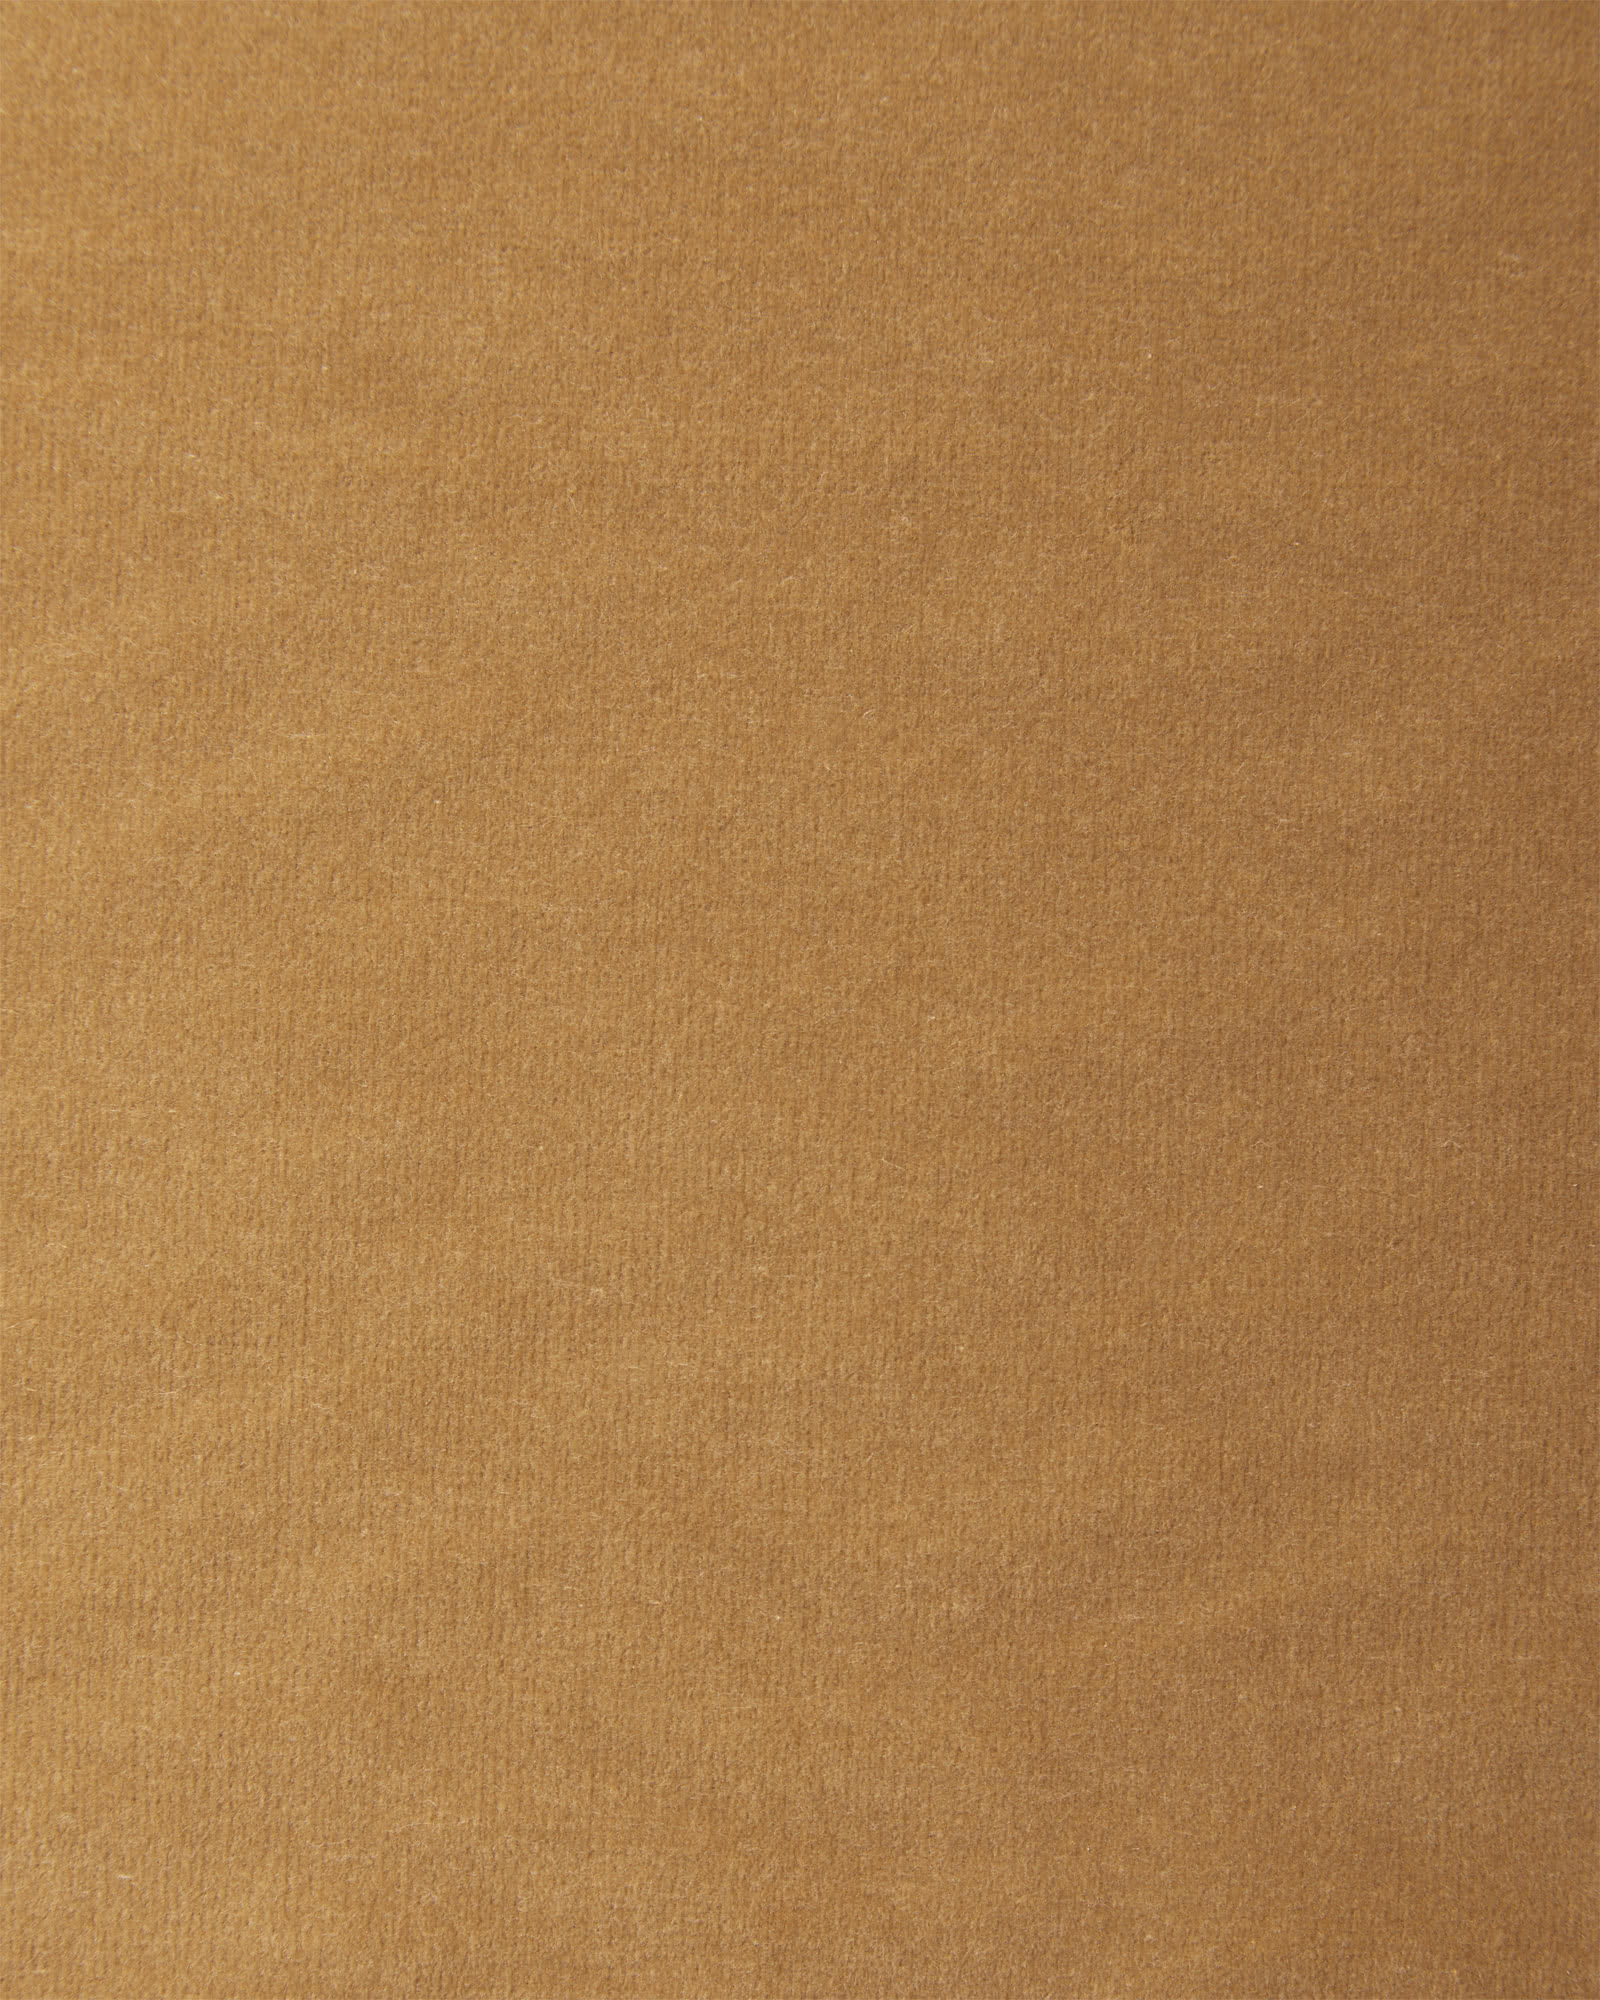 Cotton Velvet Alderwood,